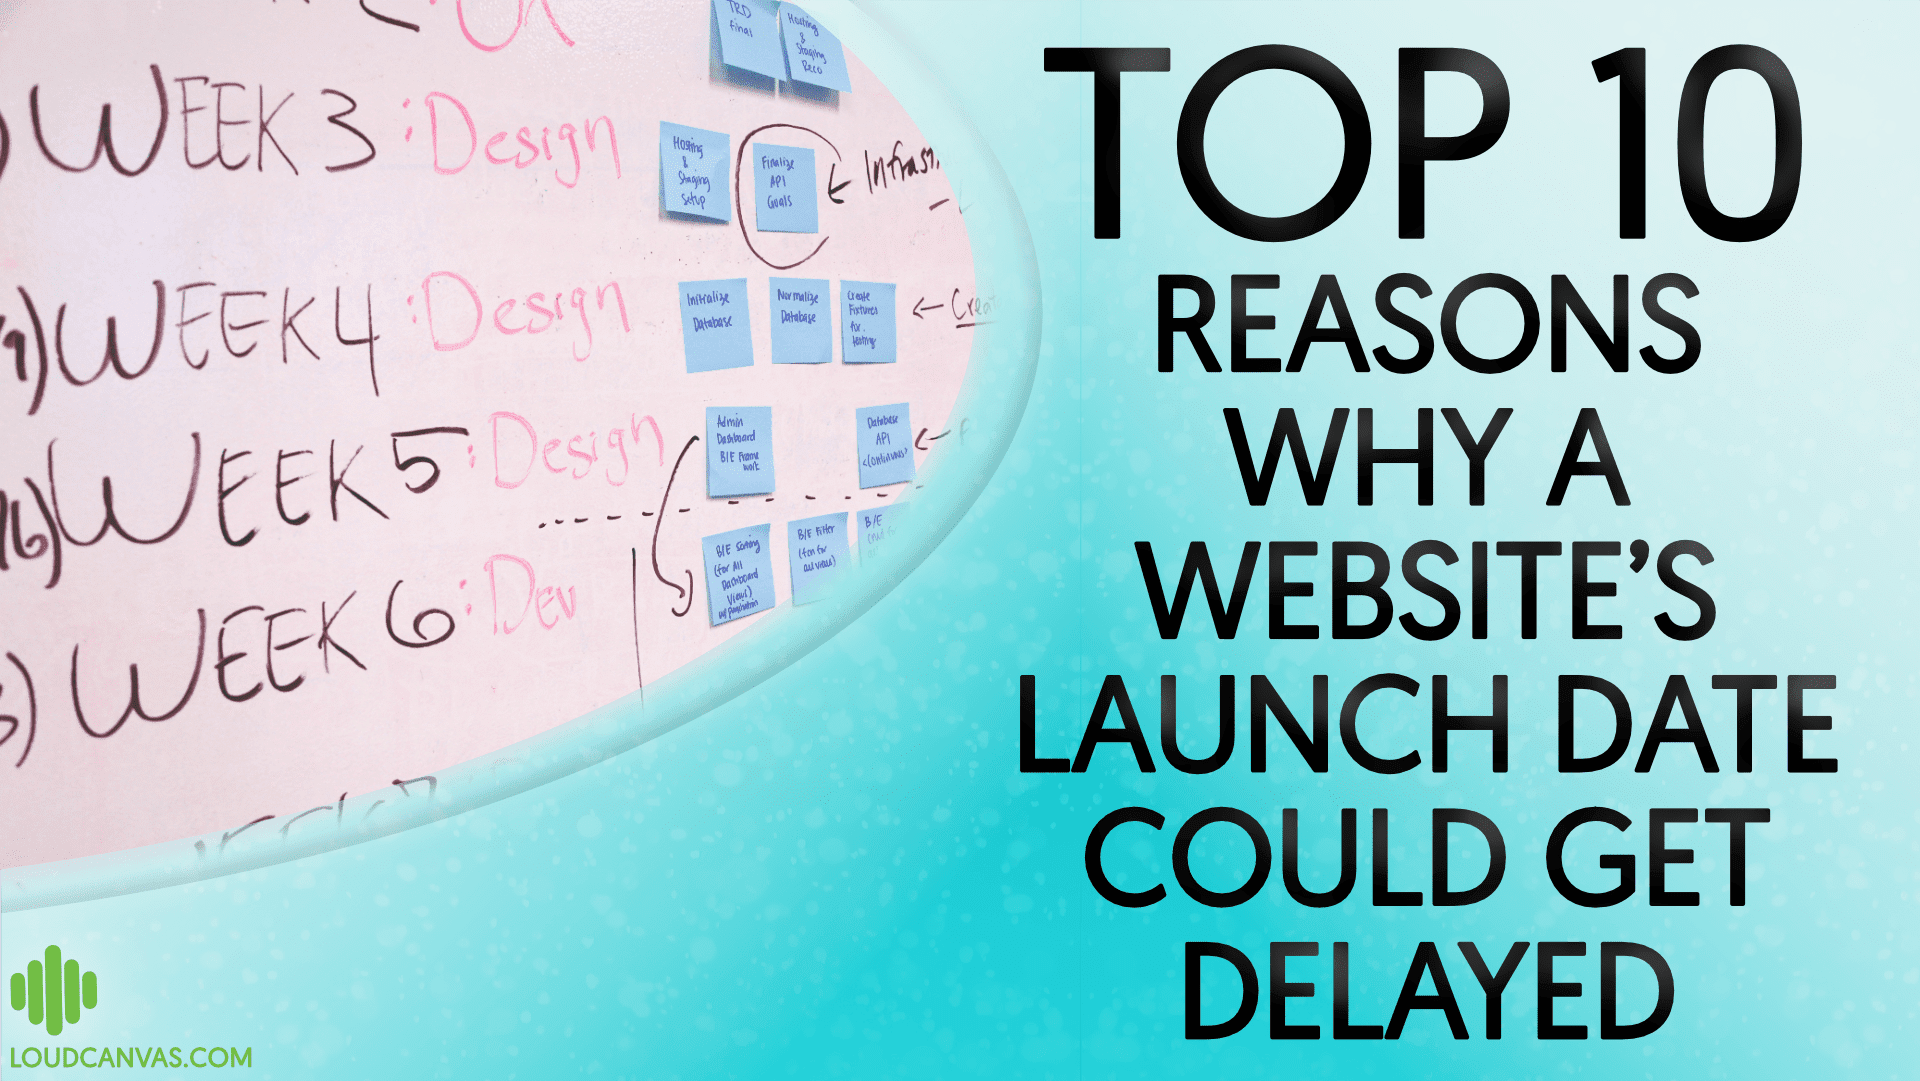 Top 10 Reasons Why A Website's Launch Date Could Get Delayed